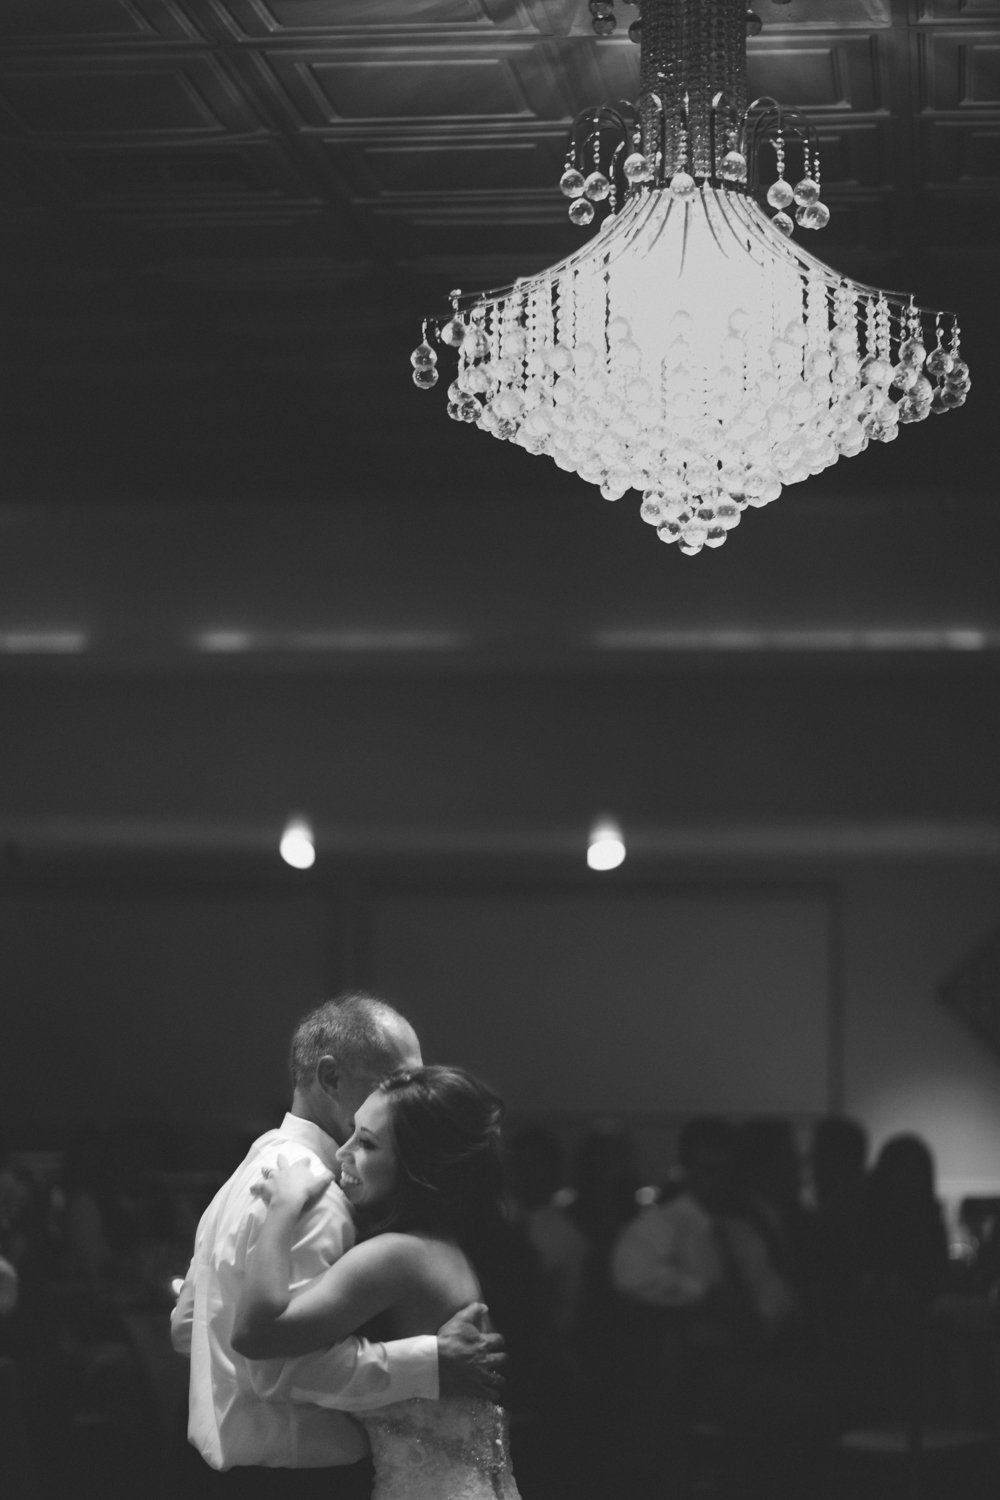 A re-edit of an old wedding